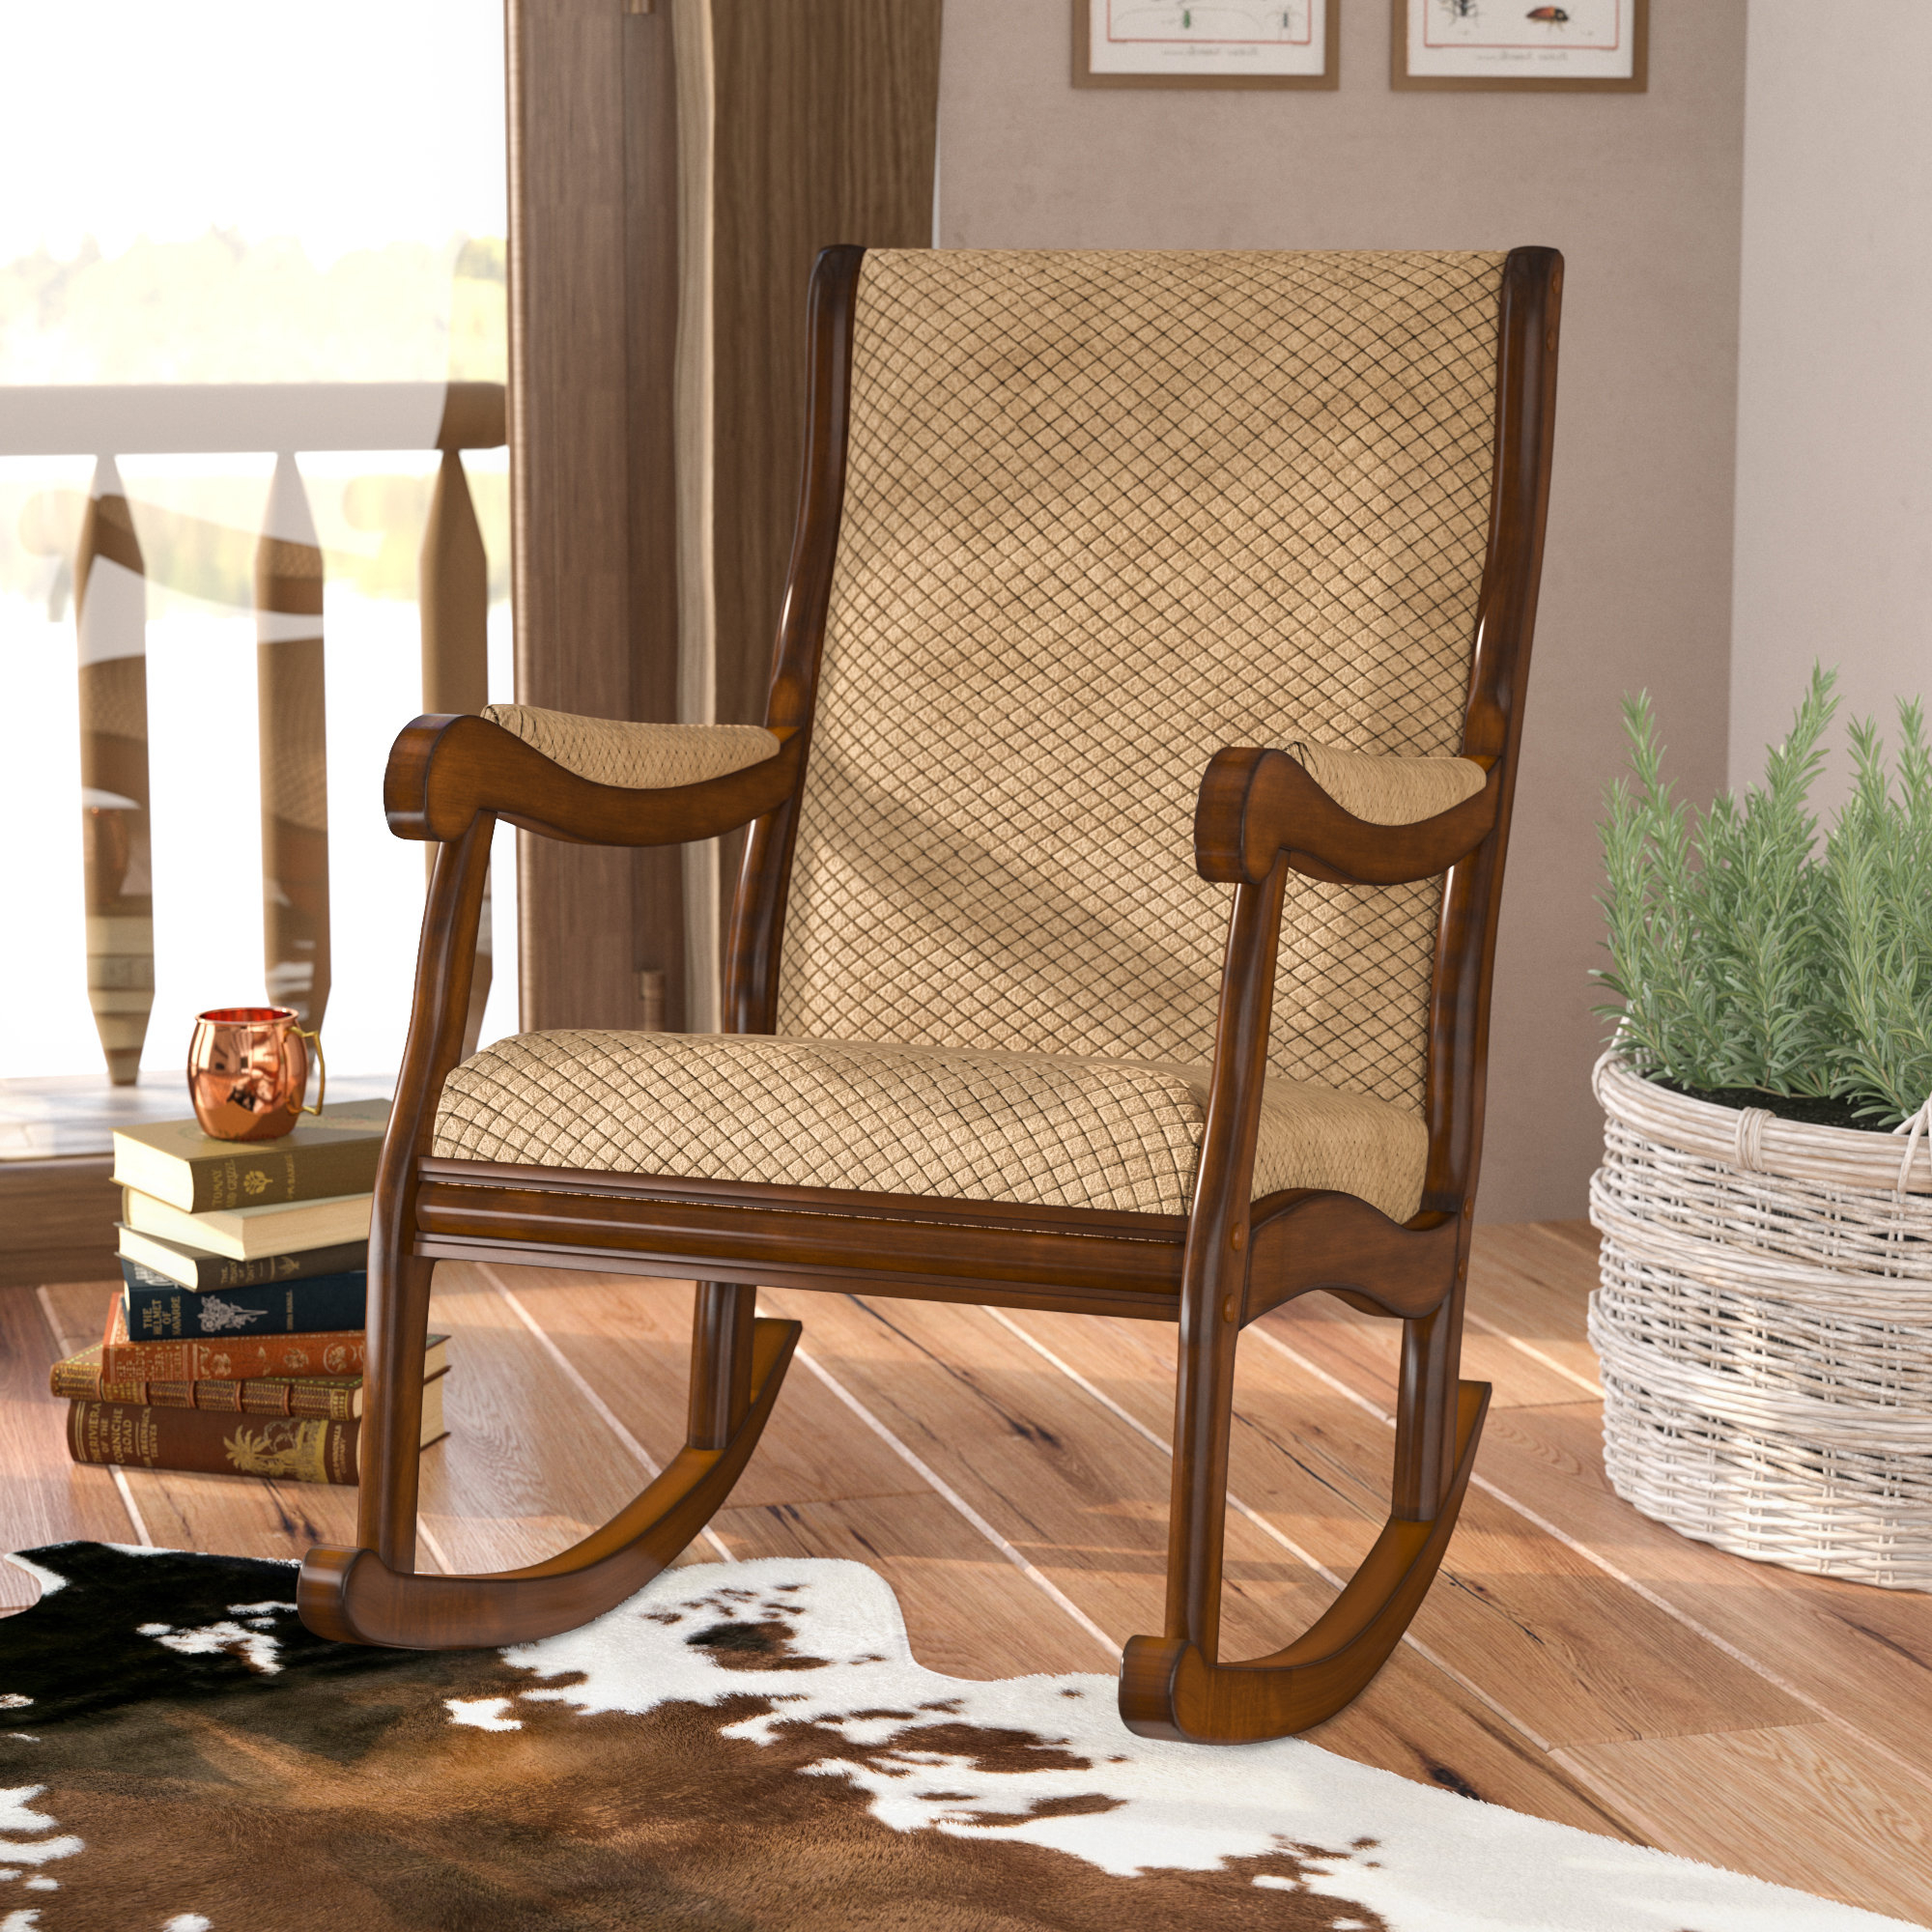 Berg Rocking Chair Throughout Faux Leather Upholstered Wooden Rocking Chairs With Looped Arms, Brown And Red (#1 of 20)